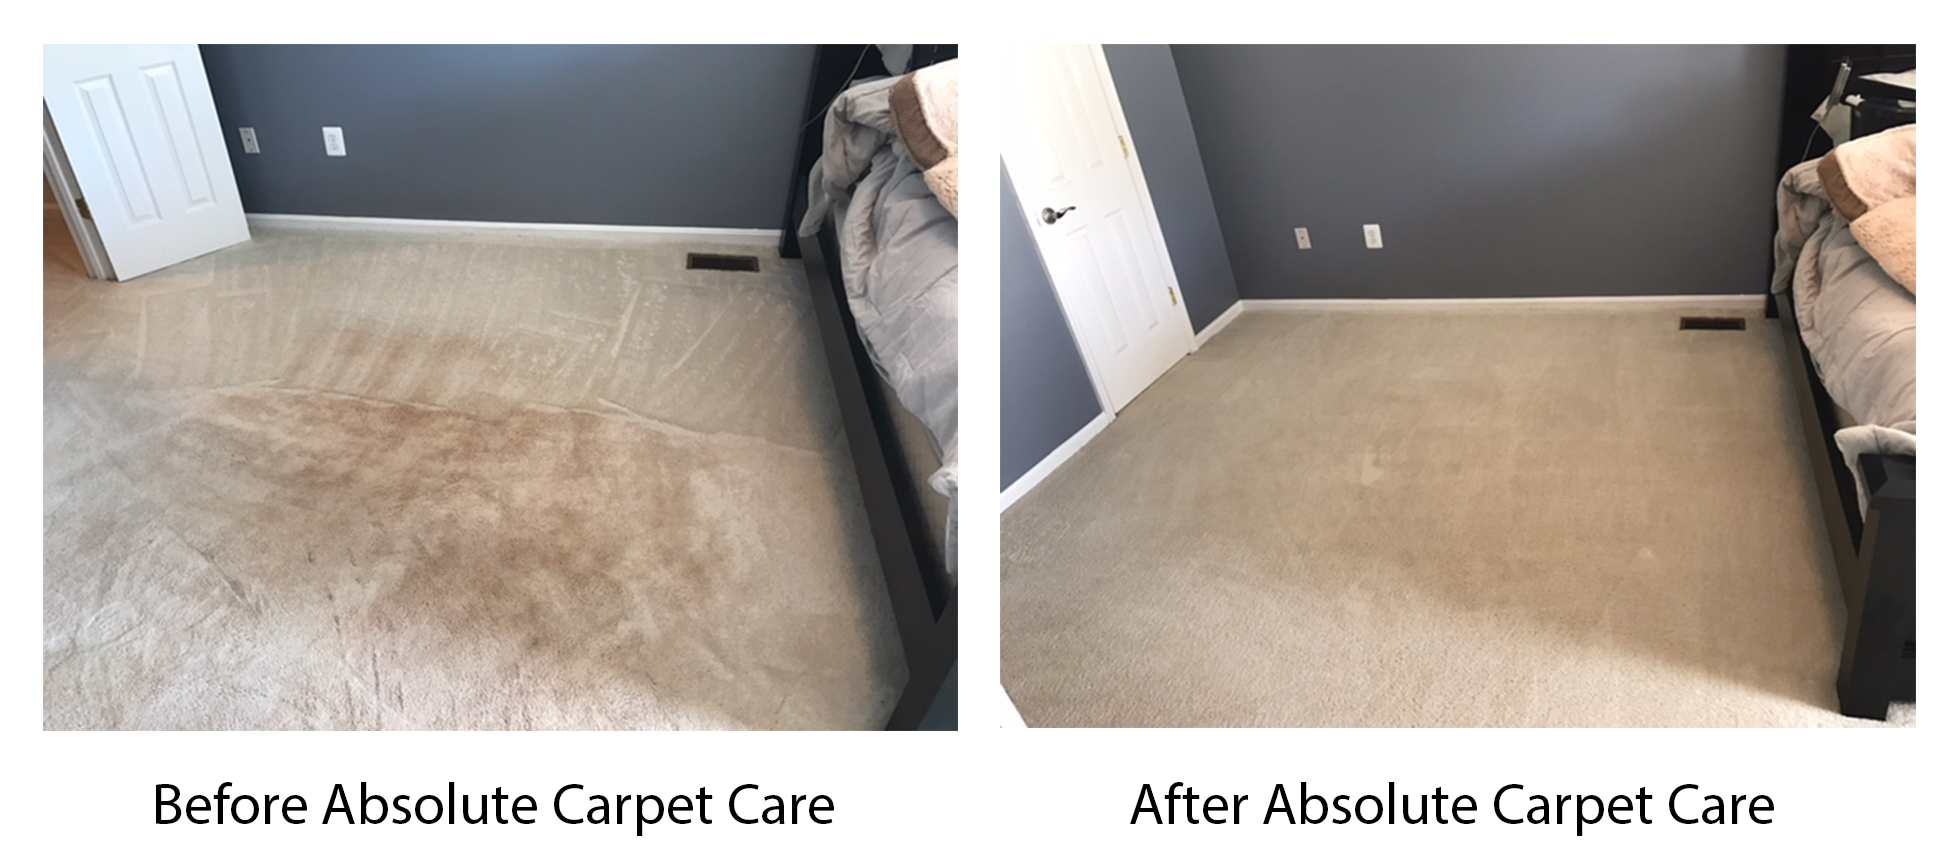 Absolute Carpet Care Before and After Pictures